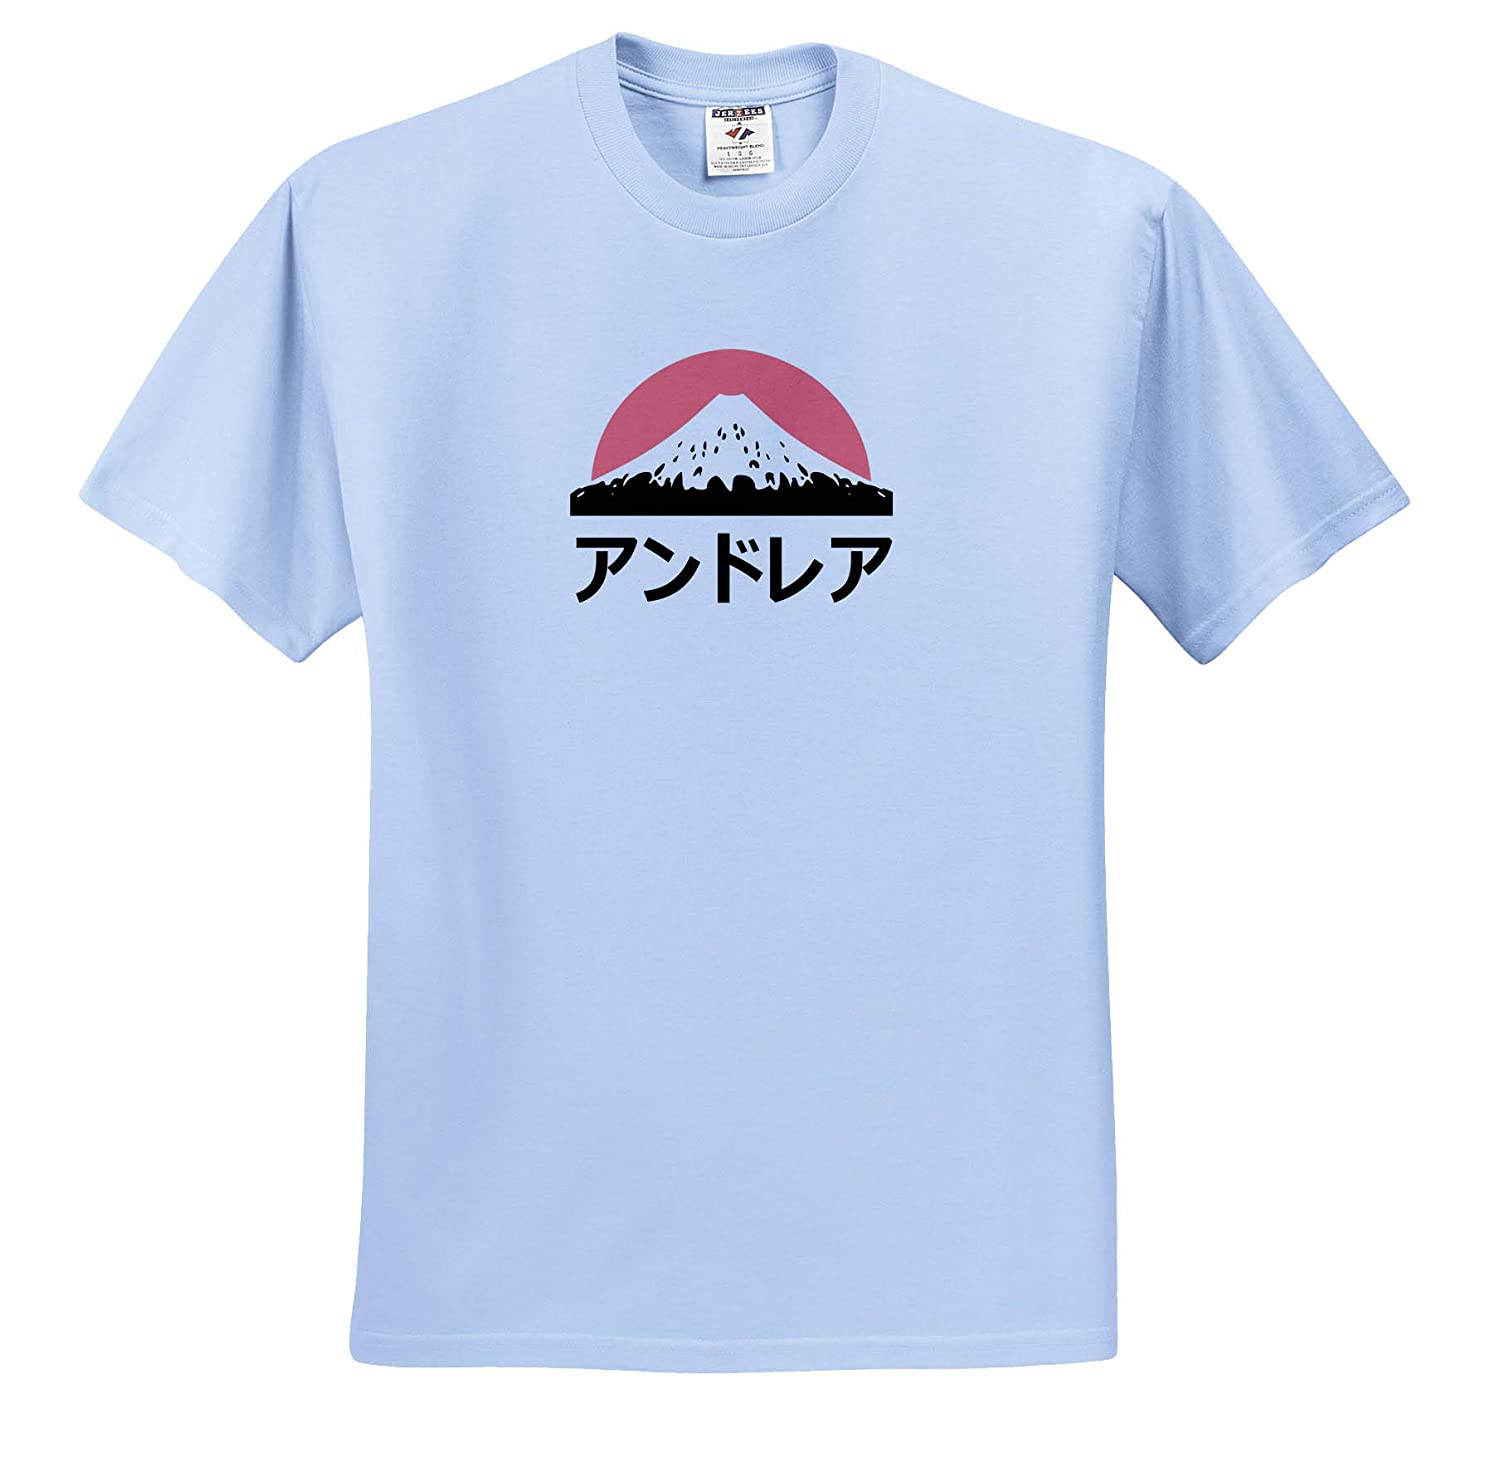 ts/_320425 Adult T-Shirt XL Name in Japanese Andrea in Japanese Letters 3dRose InspirationzStore